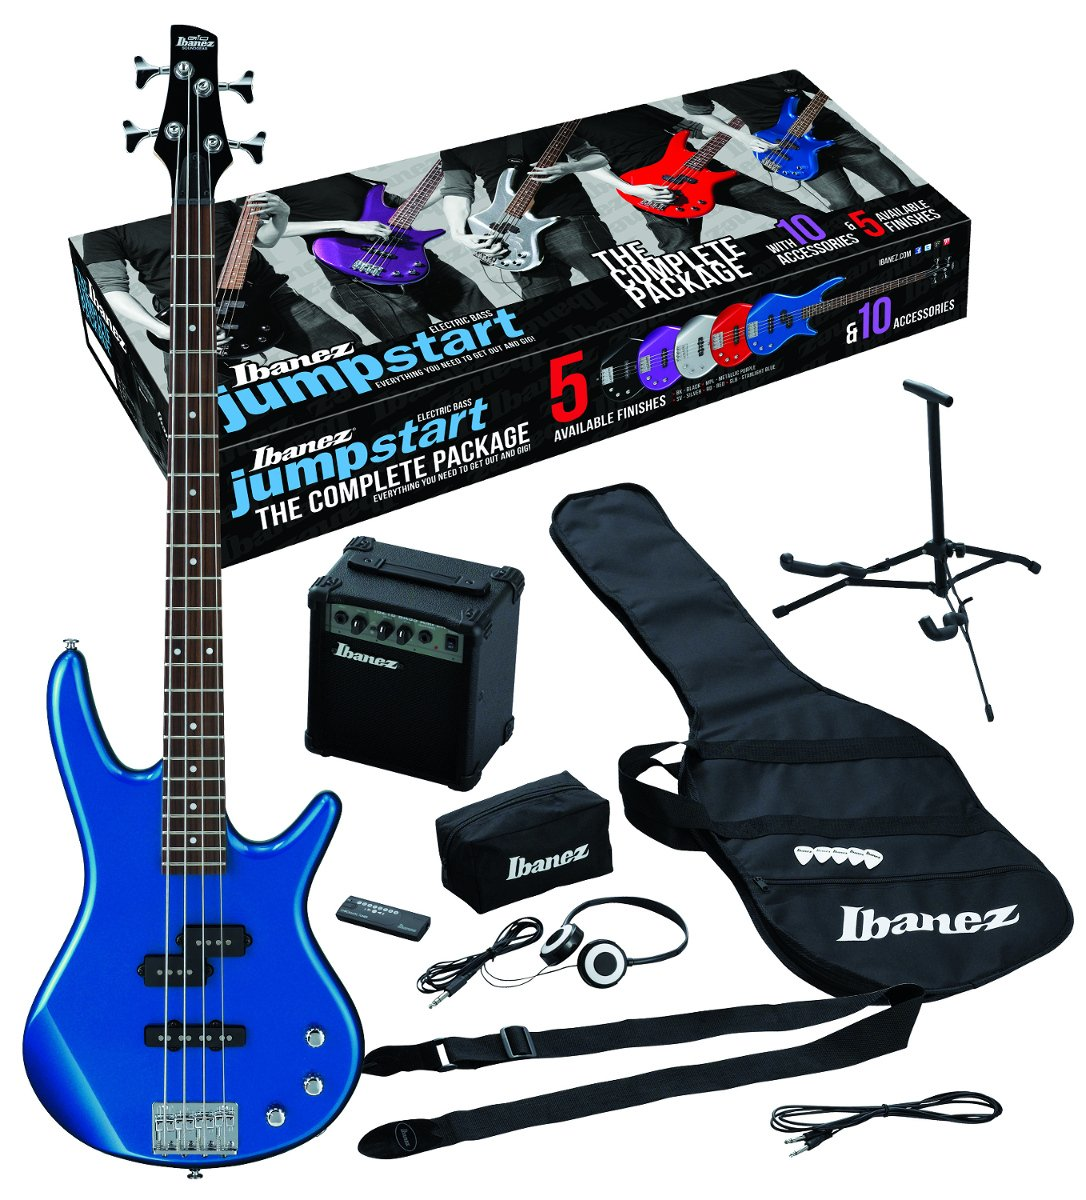 Ibanez IJXB150BSLB Jumpstart Electric Bass Package with Starlight Blue Electric Bass IJXB150BSLB